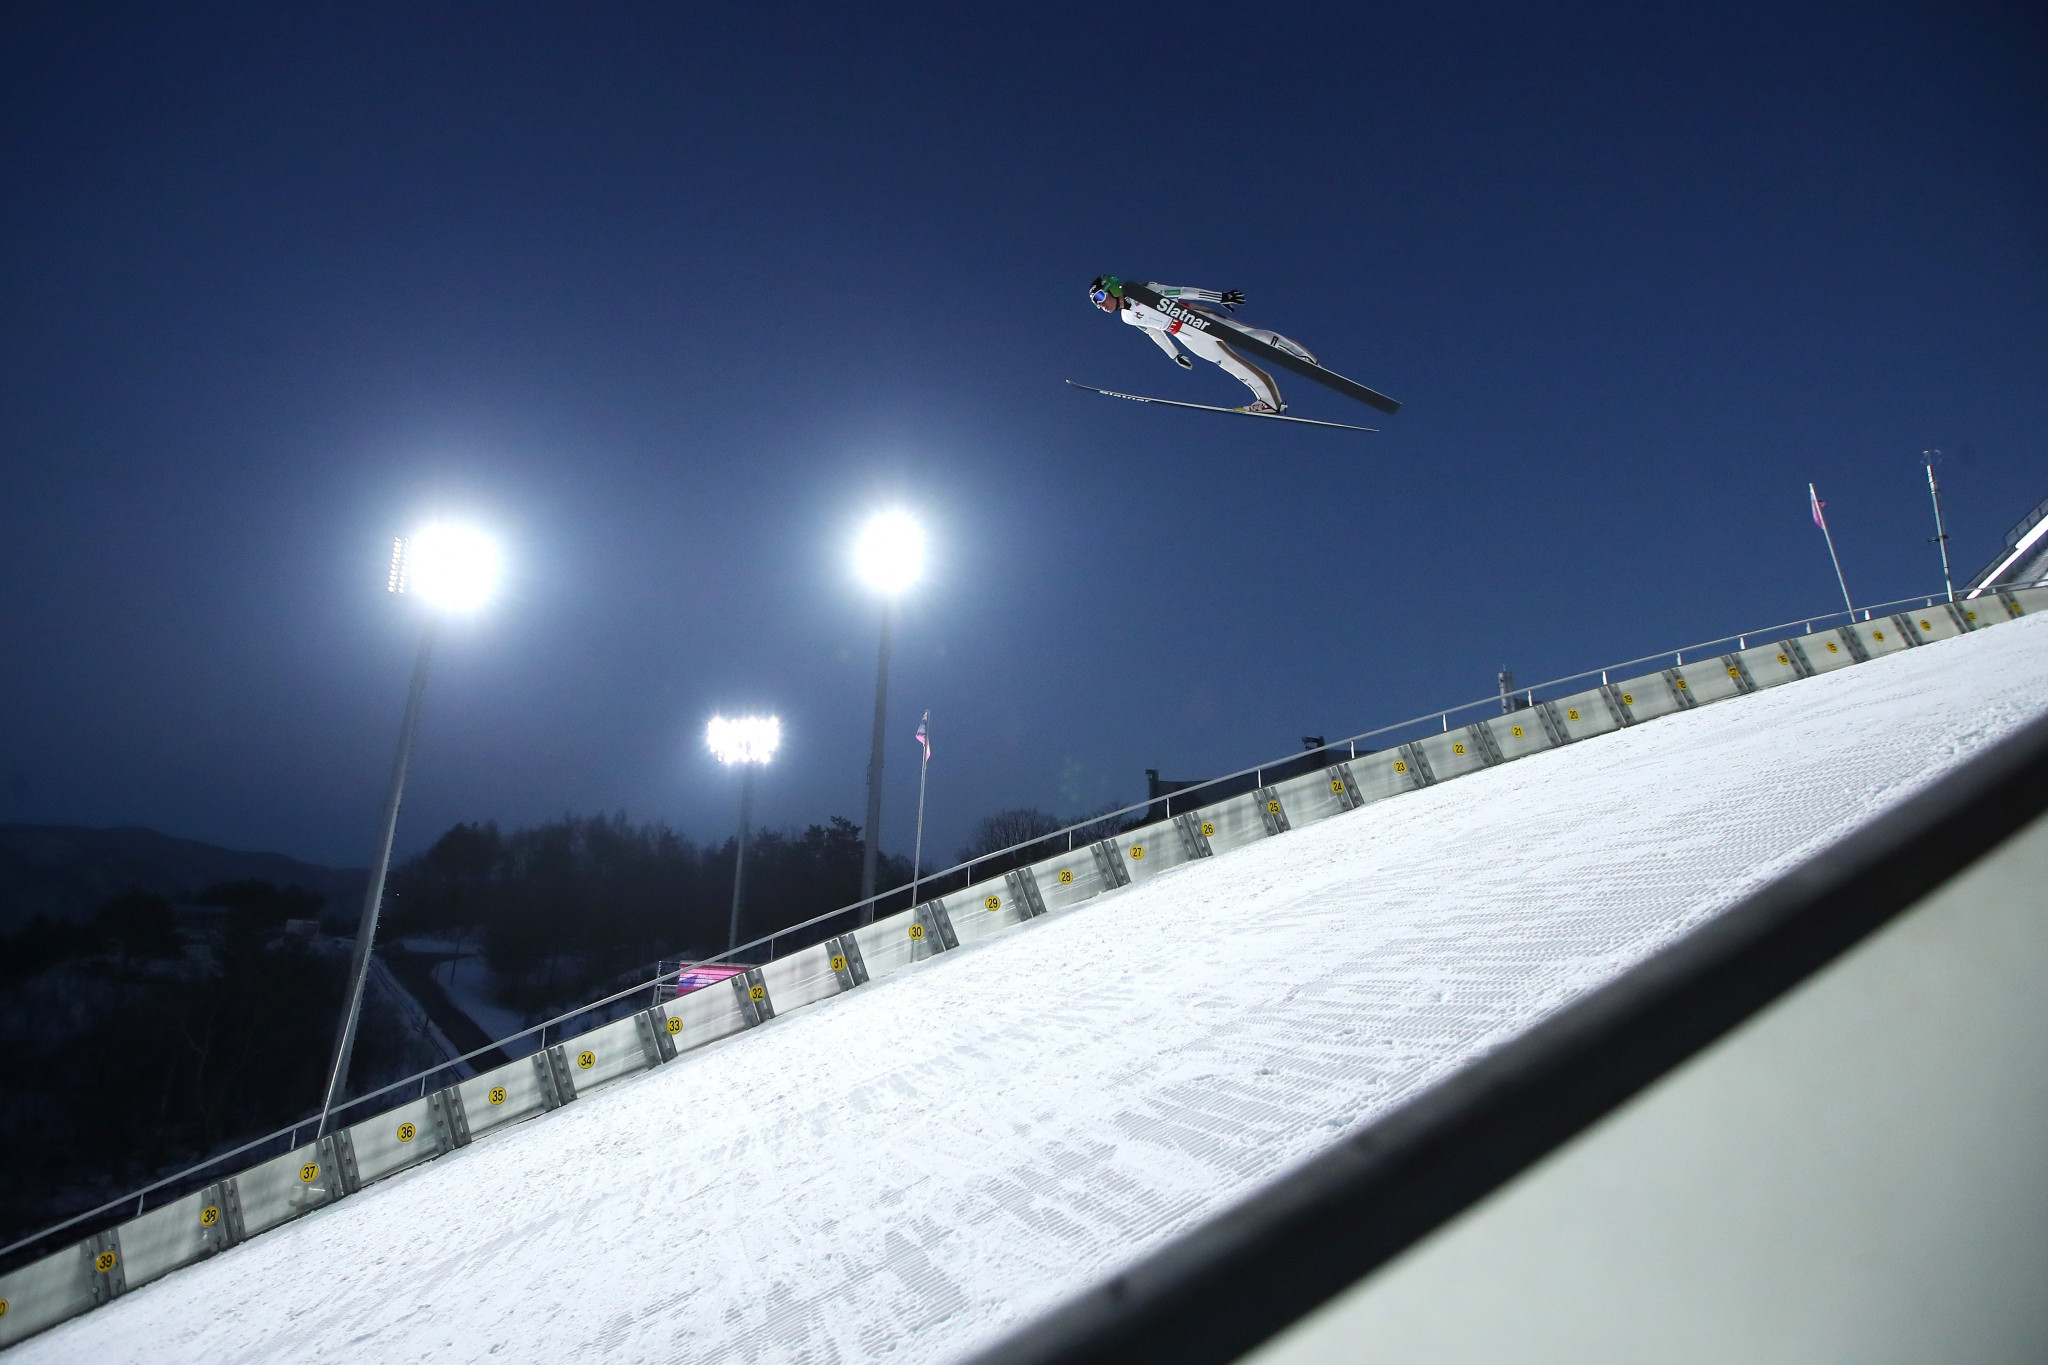 The Pyeongchang 2018 Winter Olympic Games are due to be held from February 9 to 25 ©Getty Images